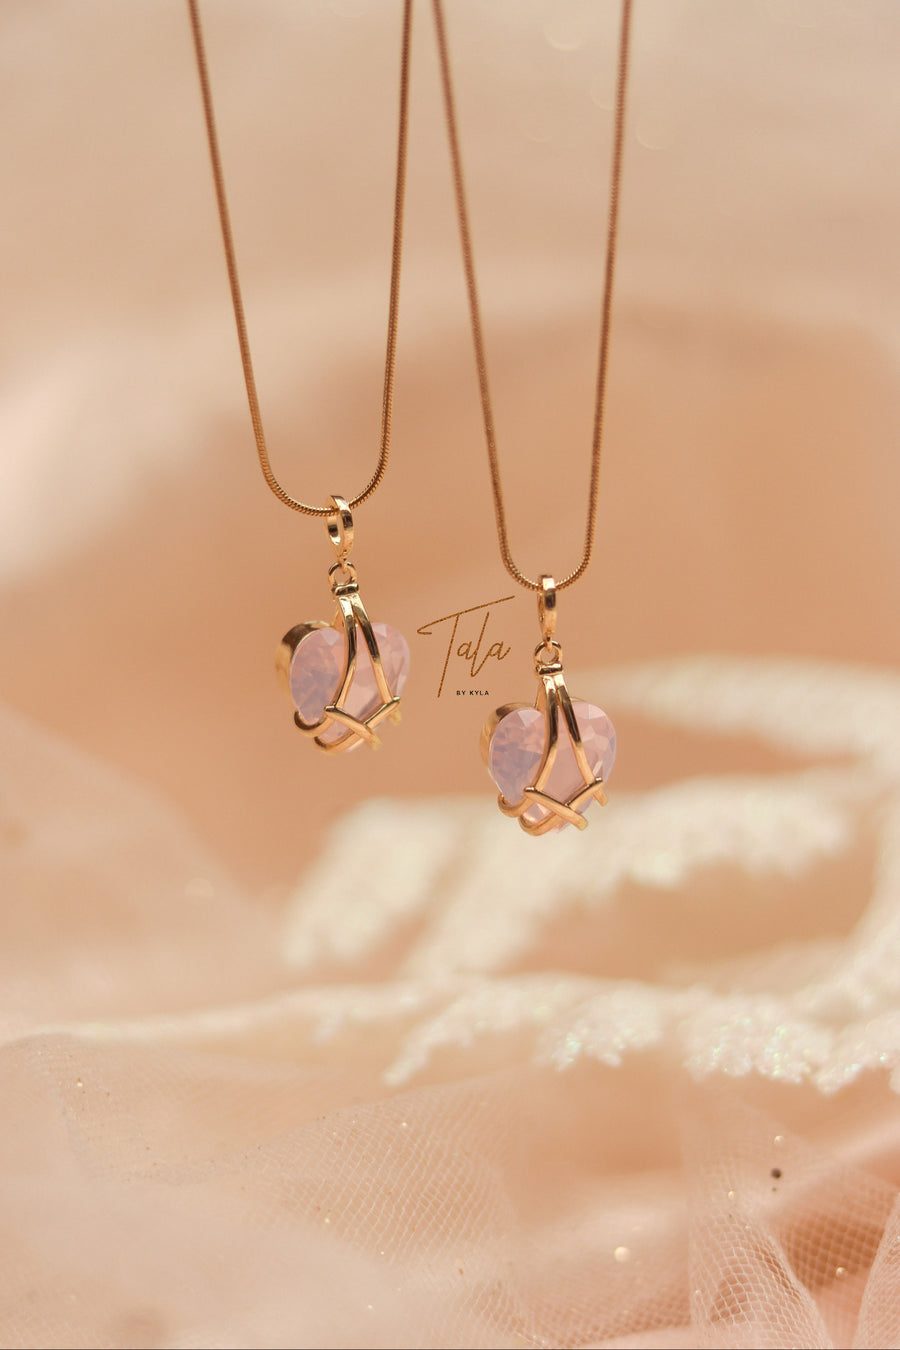 Tala by Kyla Diamond Heart Necklace